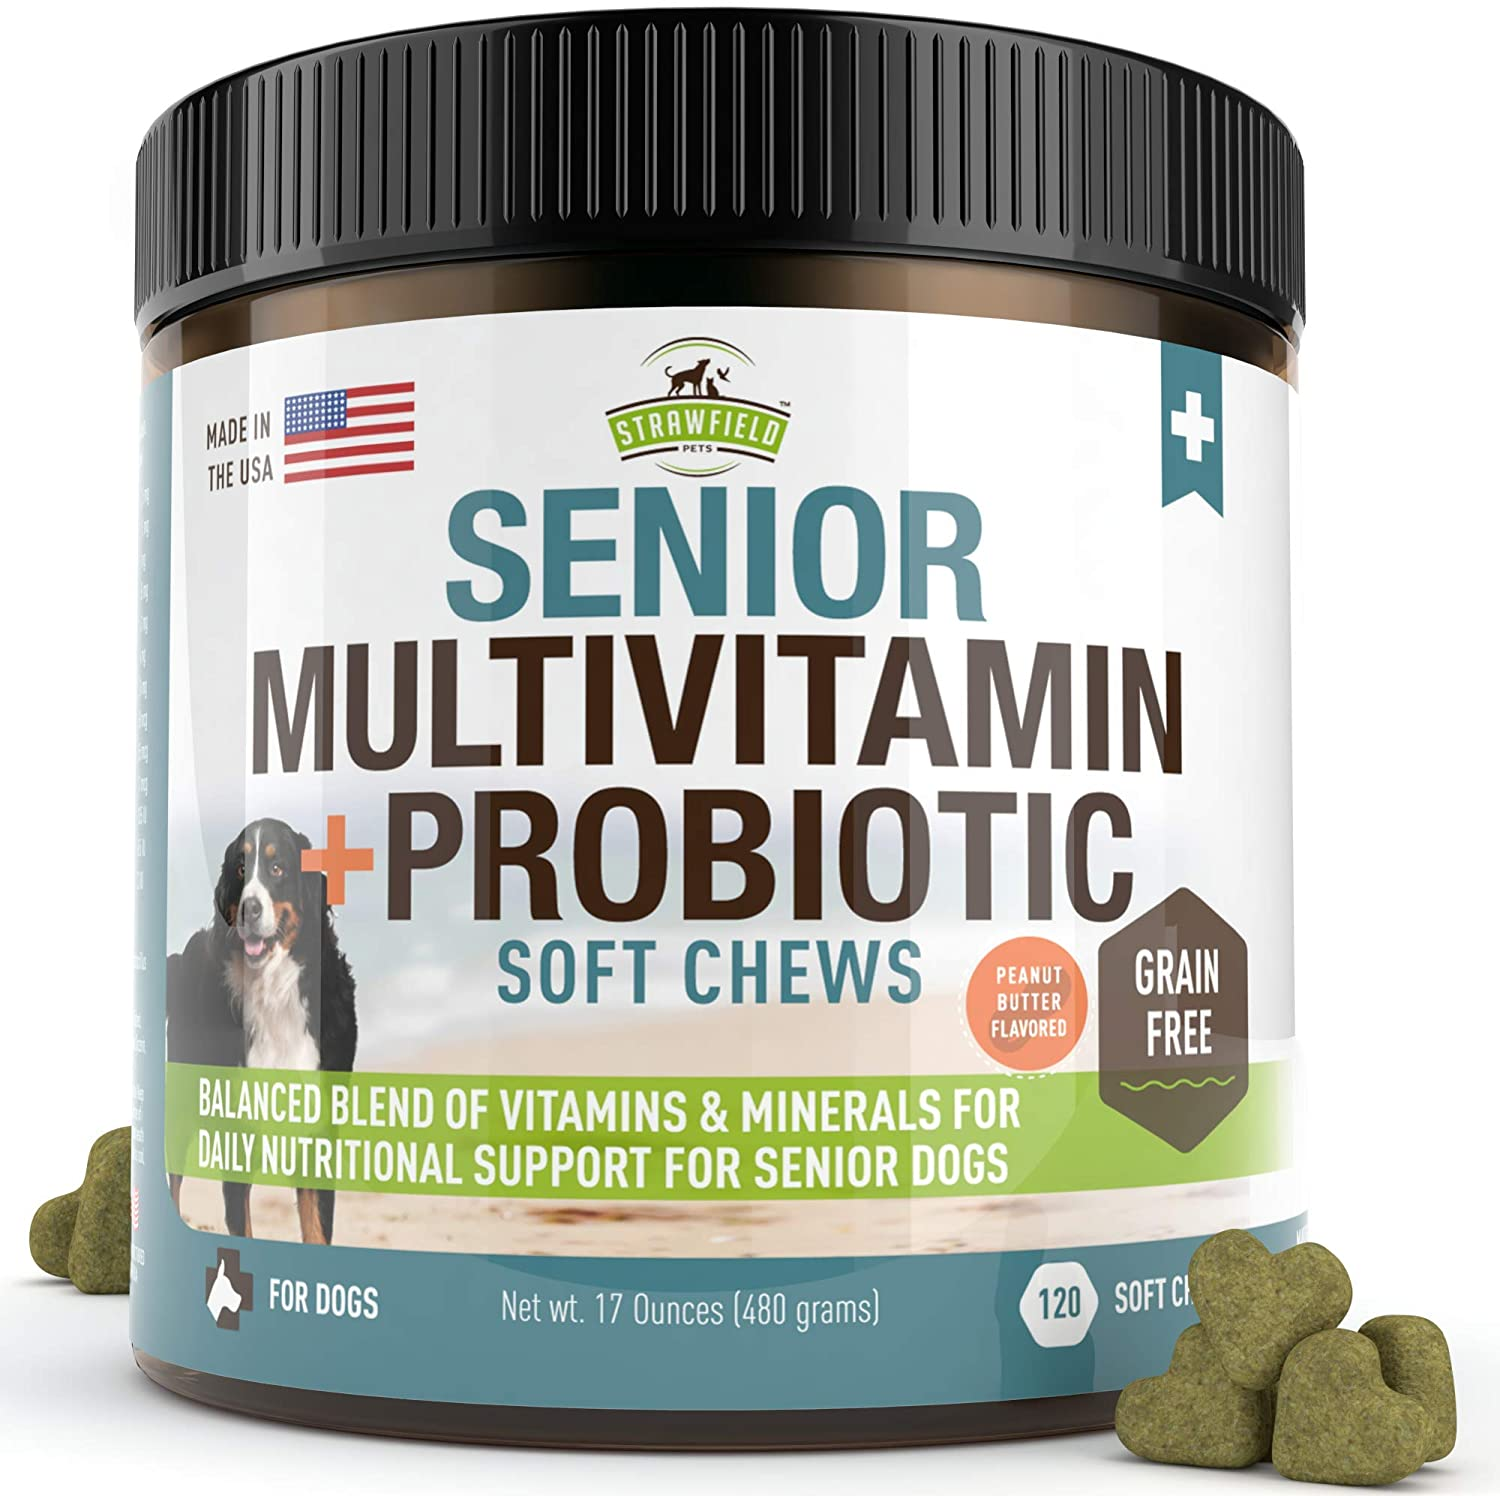 Strawfield Pets Senior Multivitamin Probiotic